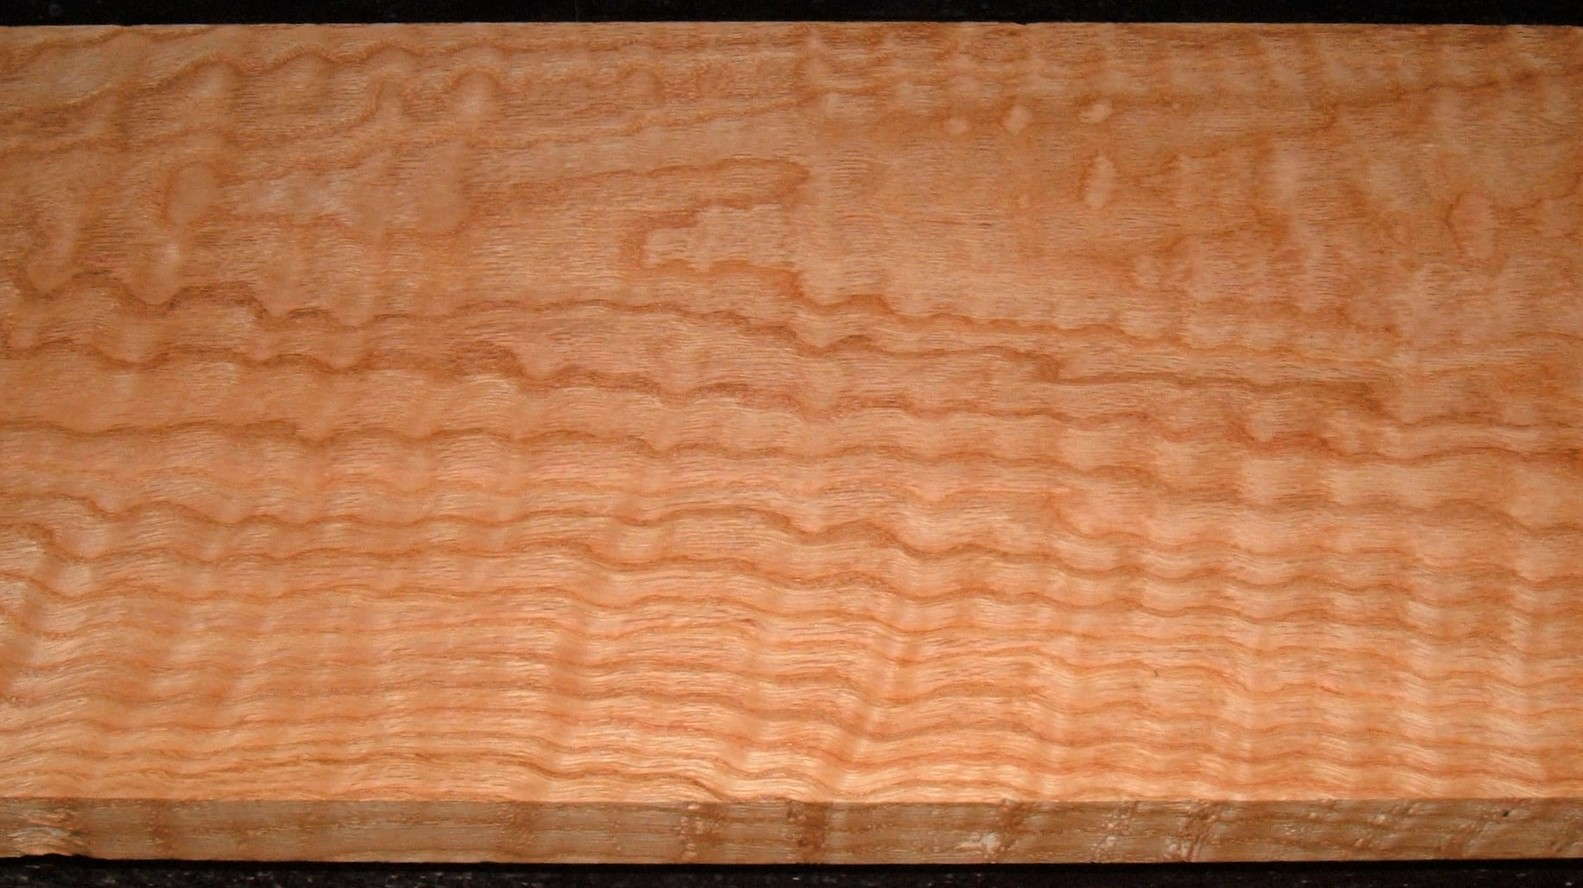 RO2102-19J, Curly Figured Tiger Red Oak, 1-1/8x10-3/8x72